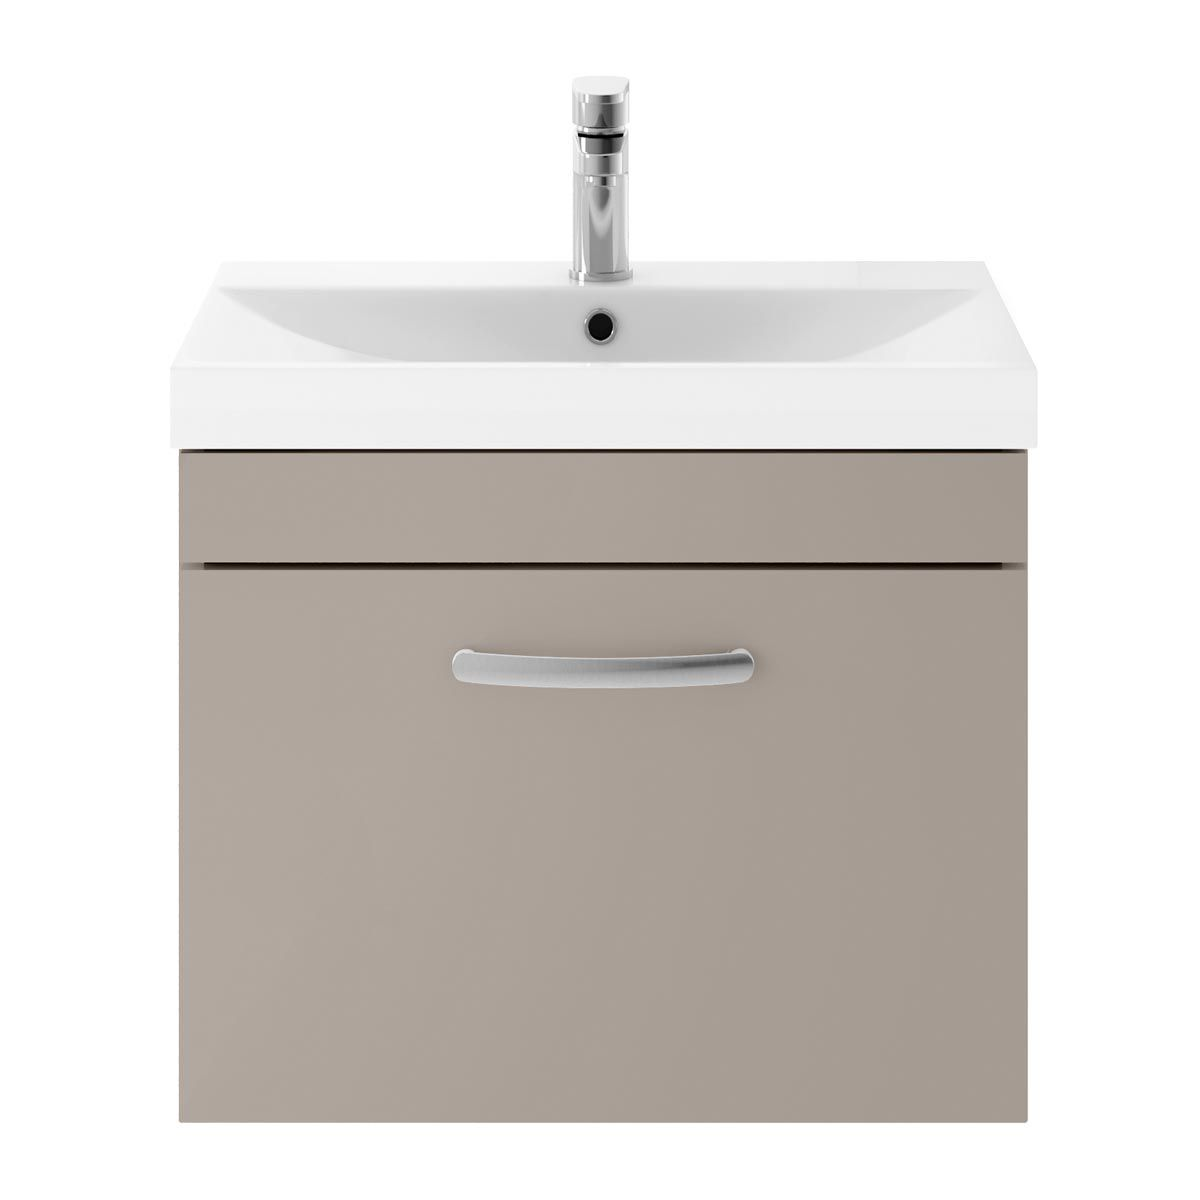 Nuie Athena Stone Grey 1 Drawer Wall Hung Vanity Unit with 50mm Profile Basin 600mm